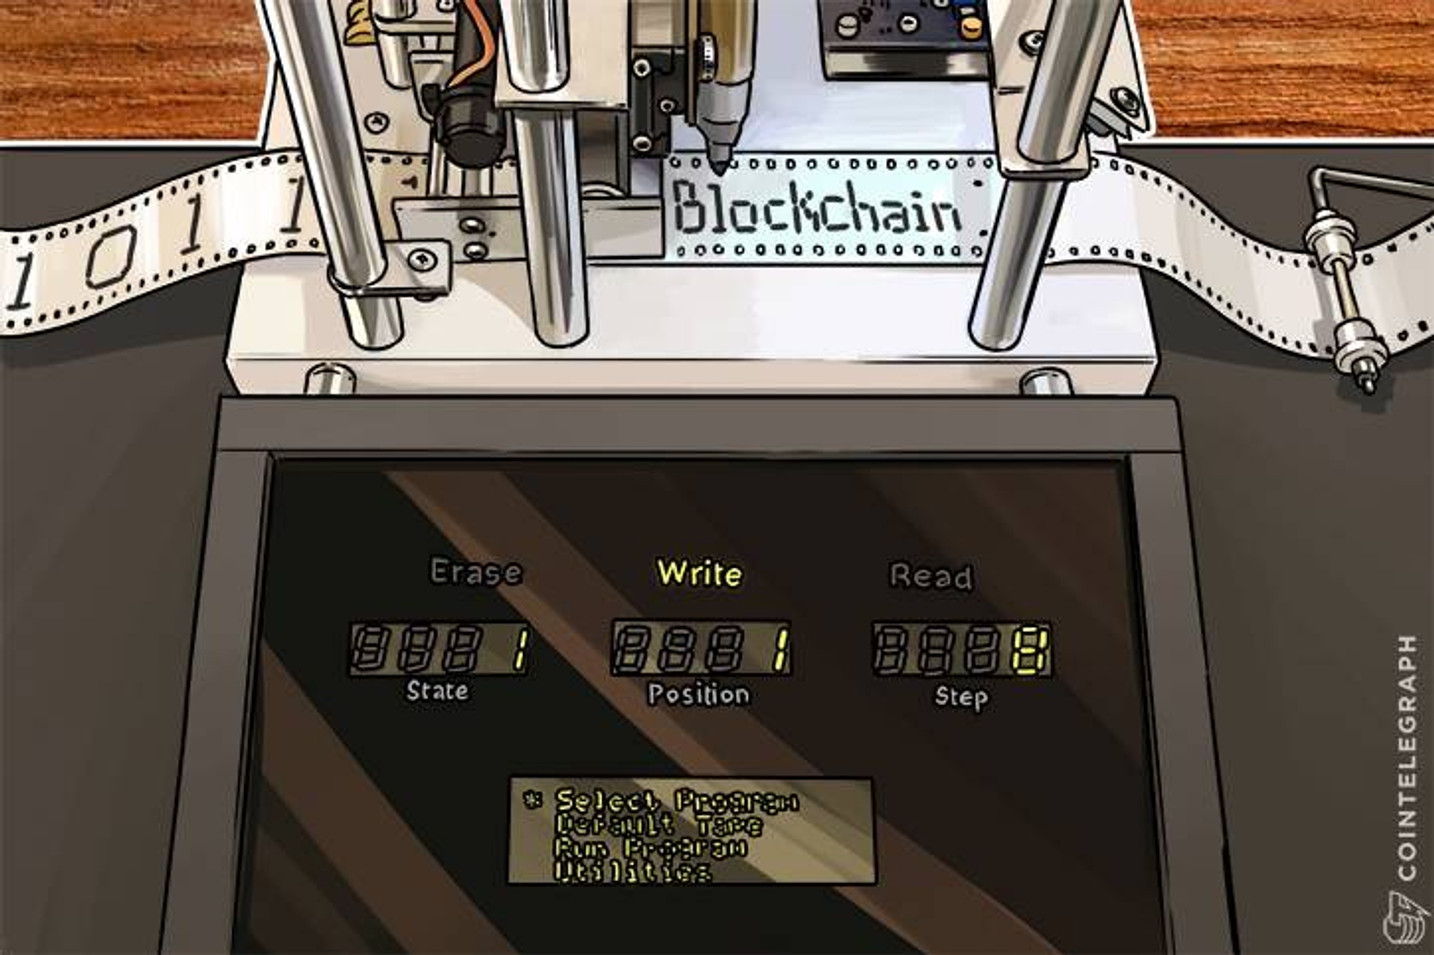 Geopolitical Analyst Believes Blockchain Will Become 'Obsolete'